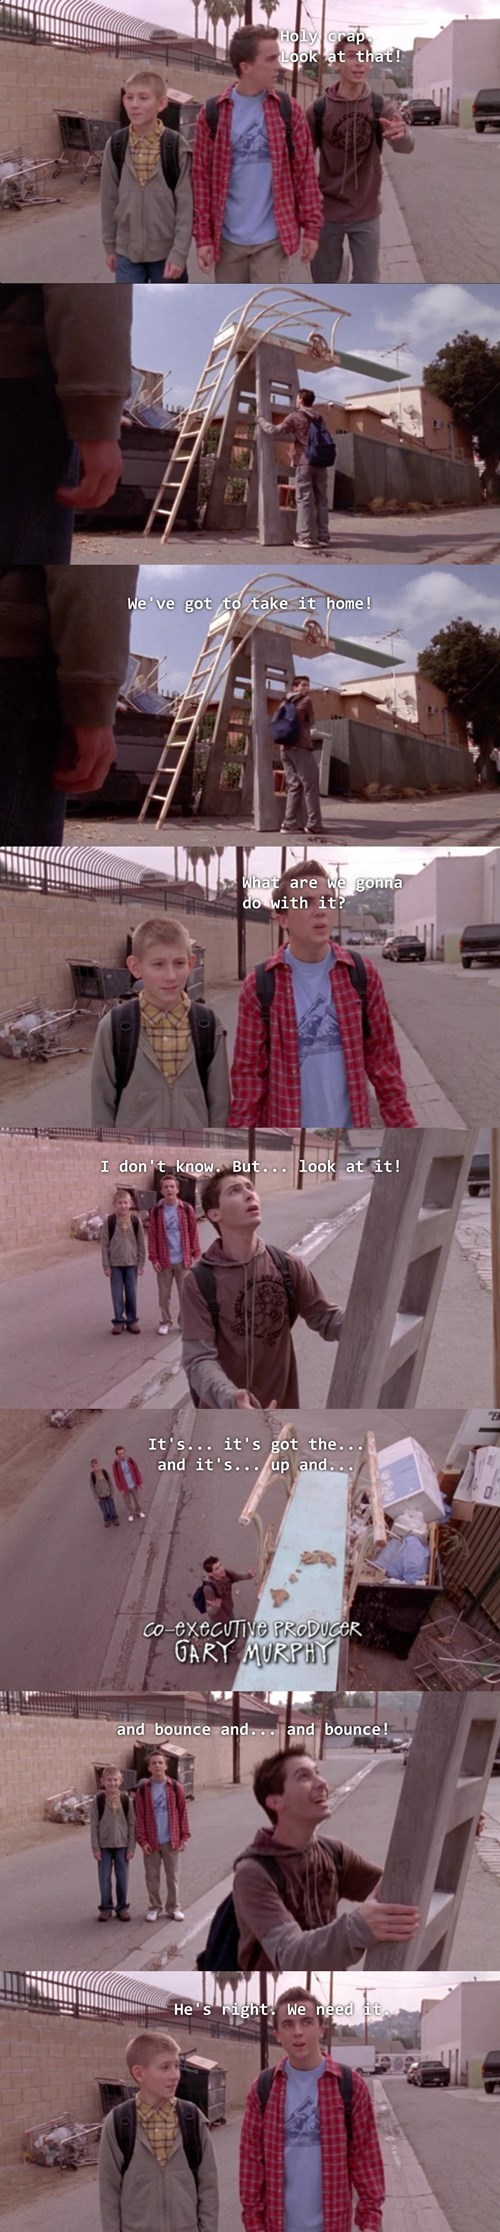 malcolm in the middle, the brothers find a raise diving board and have to have it